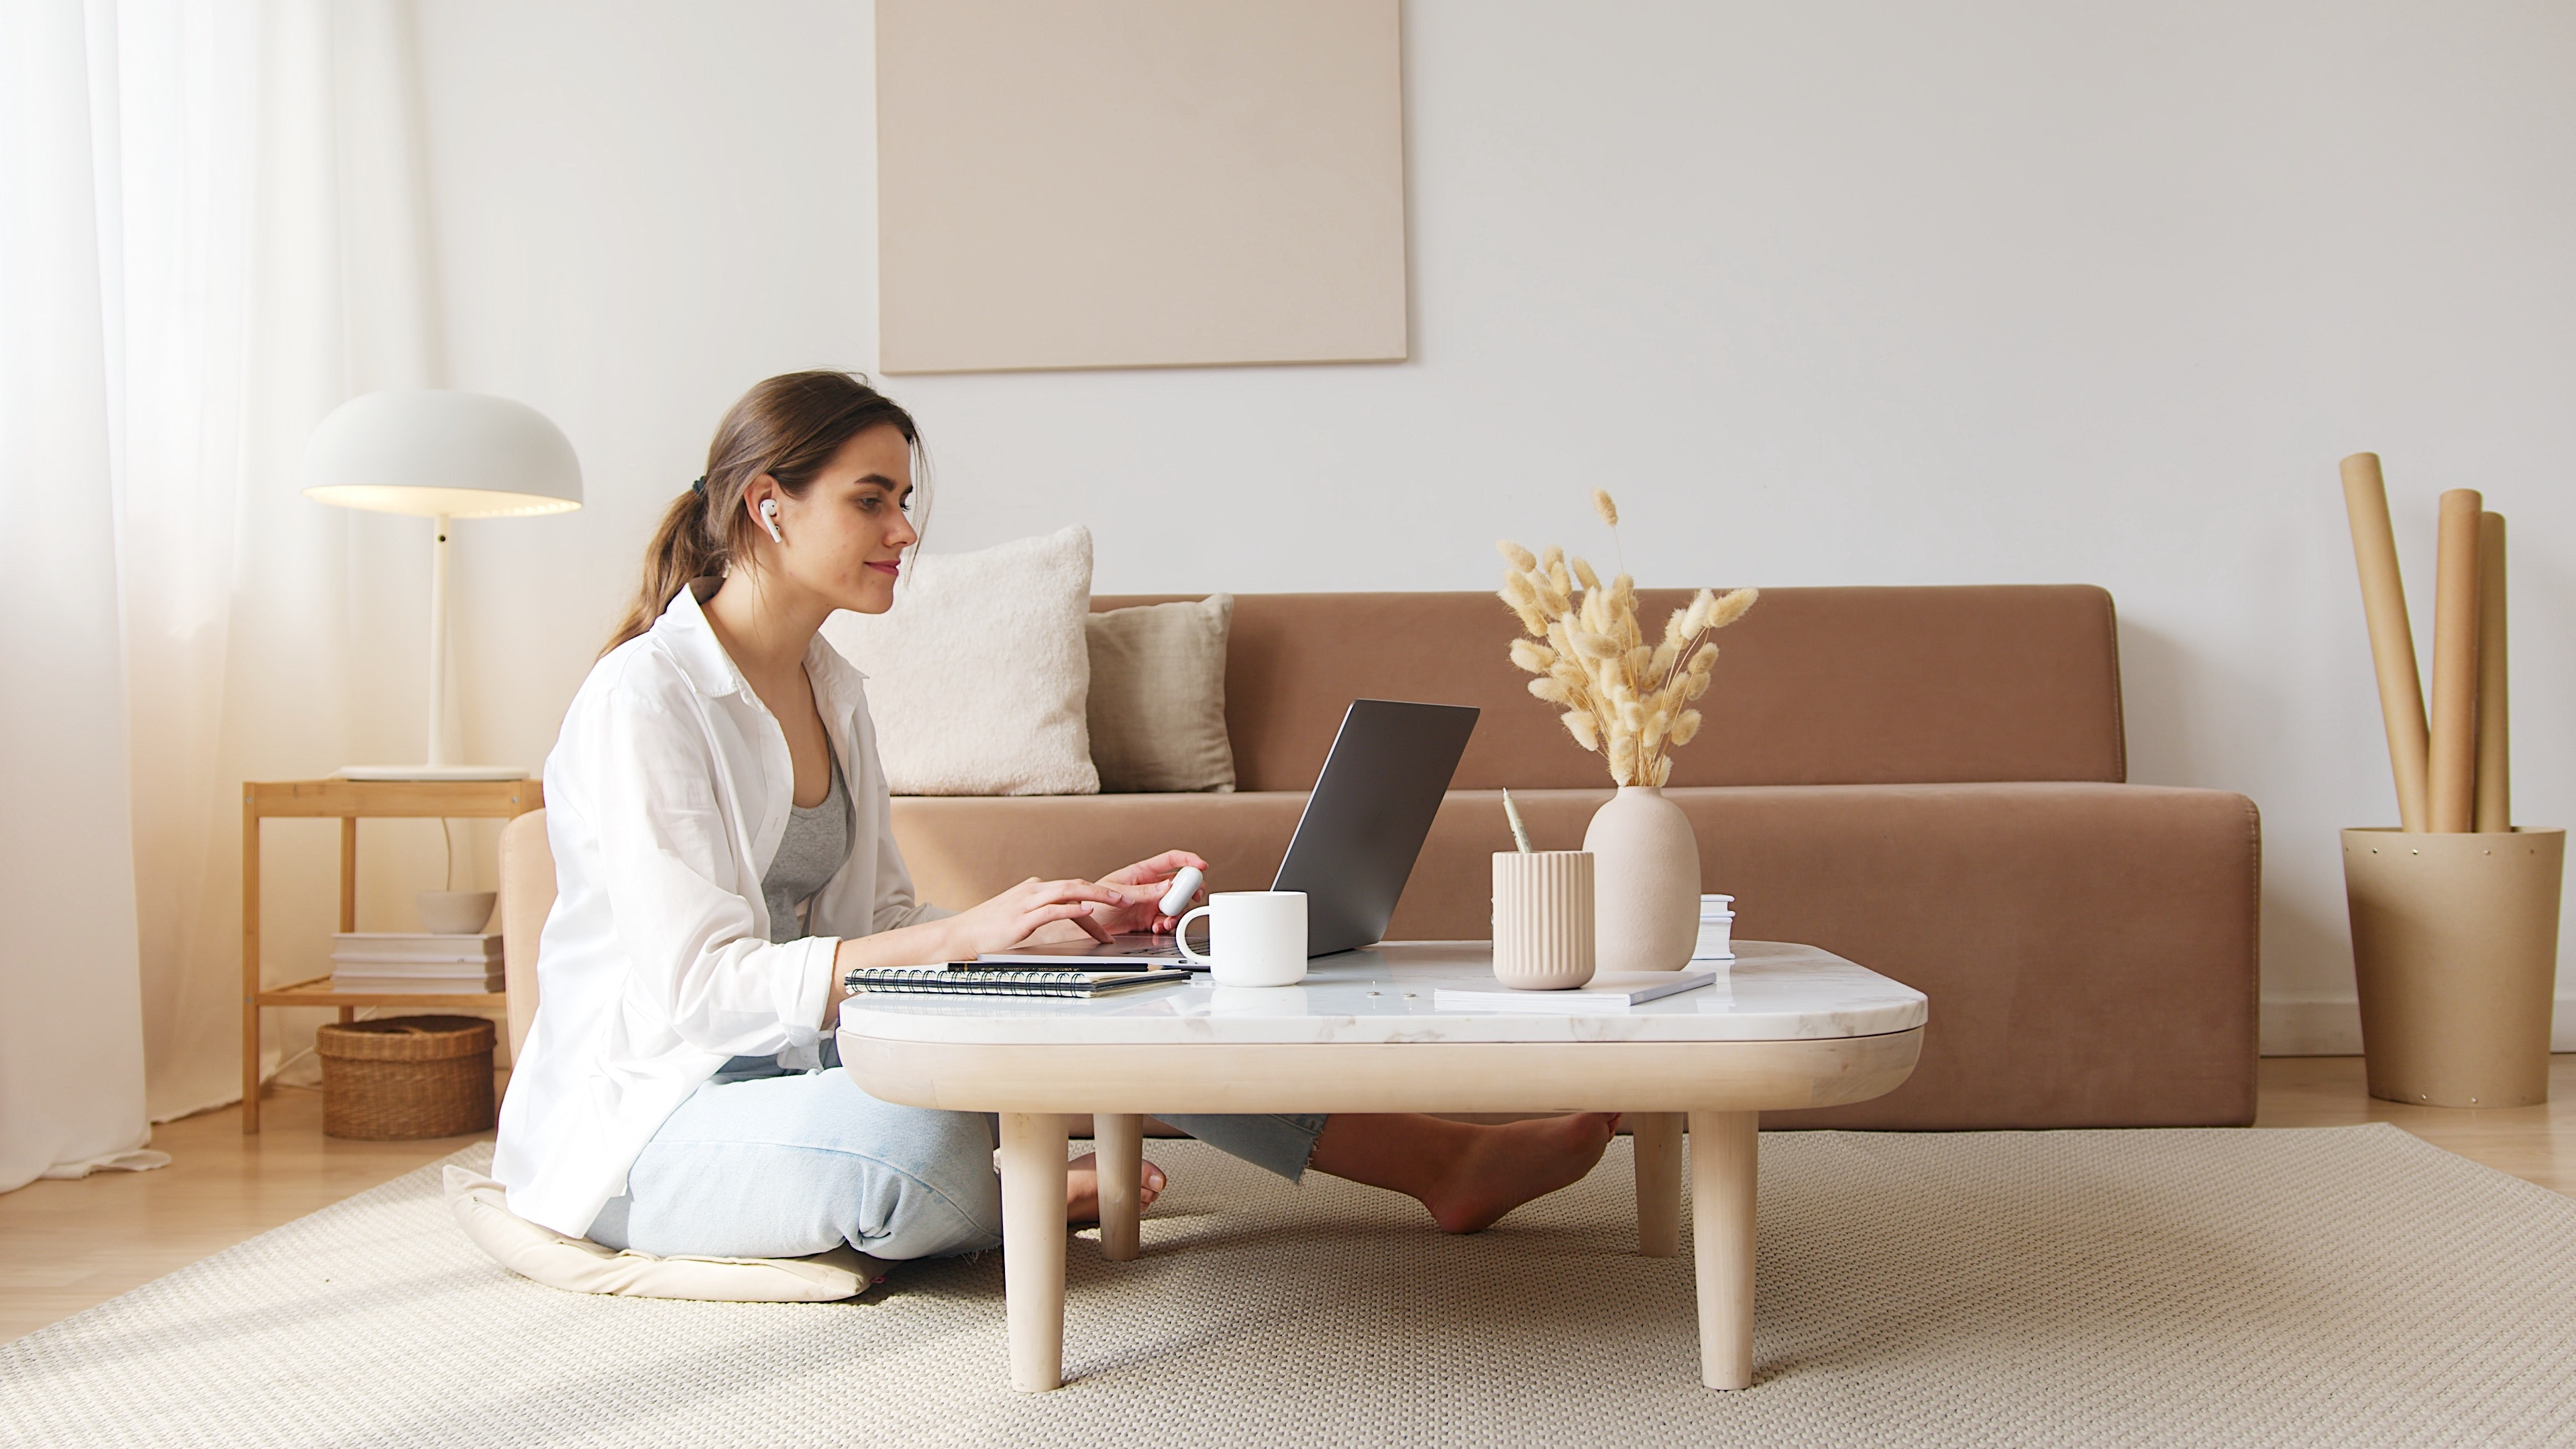 content-woman-using-laptop-on-floor-4492129